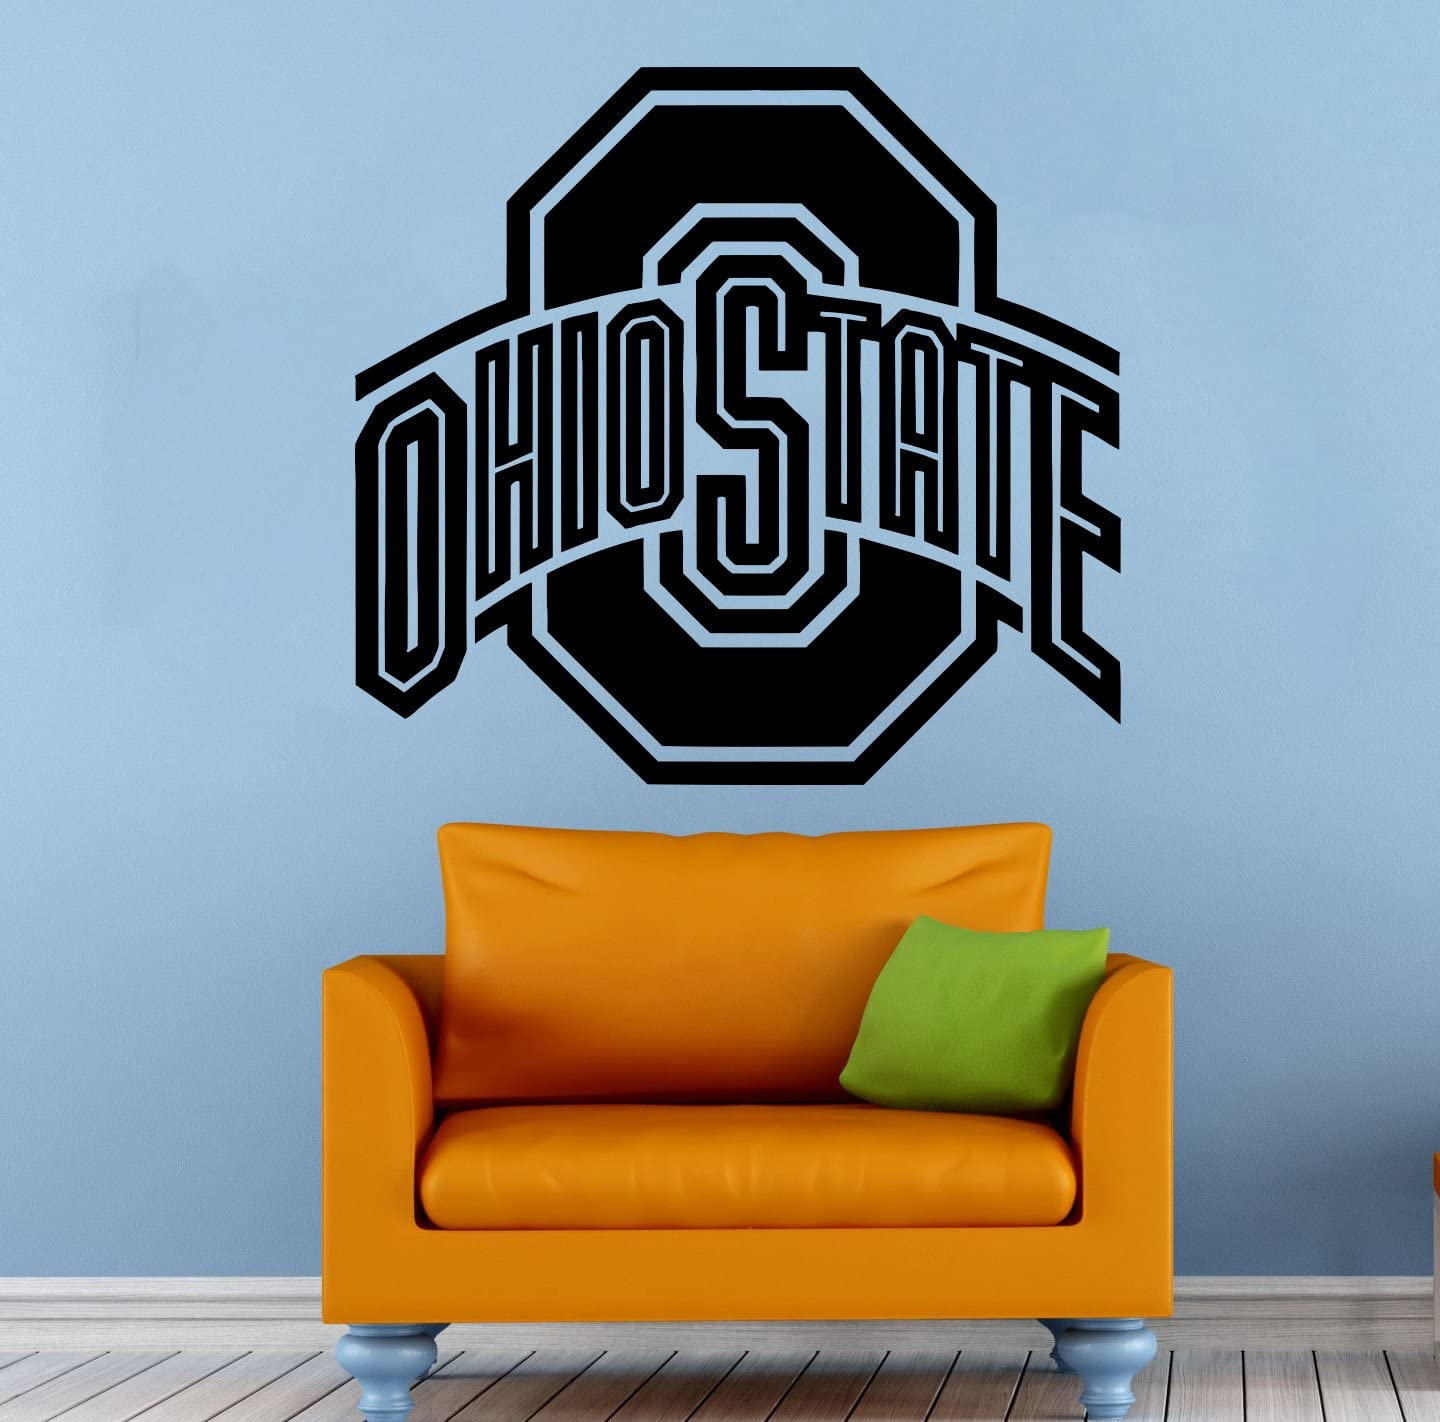 NCAA Wall Decal Sticker Ohio State Football Emblem Home Interior Removable Decor (25